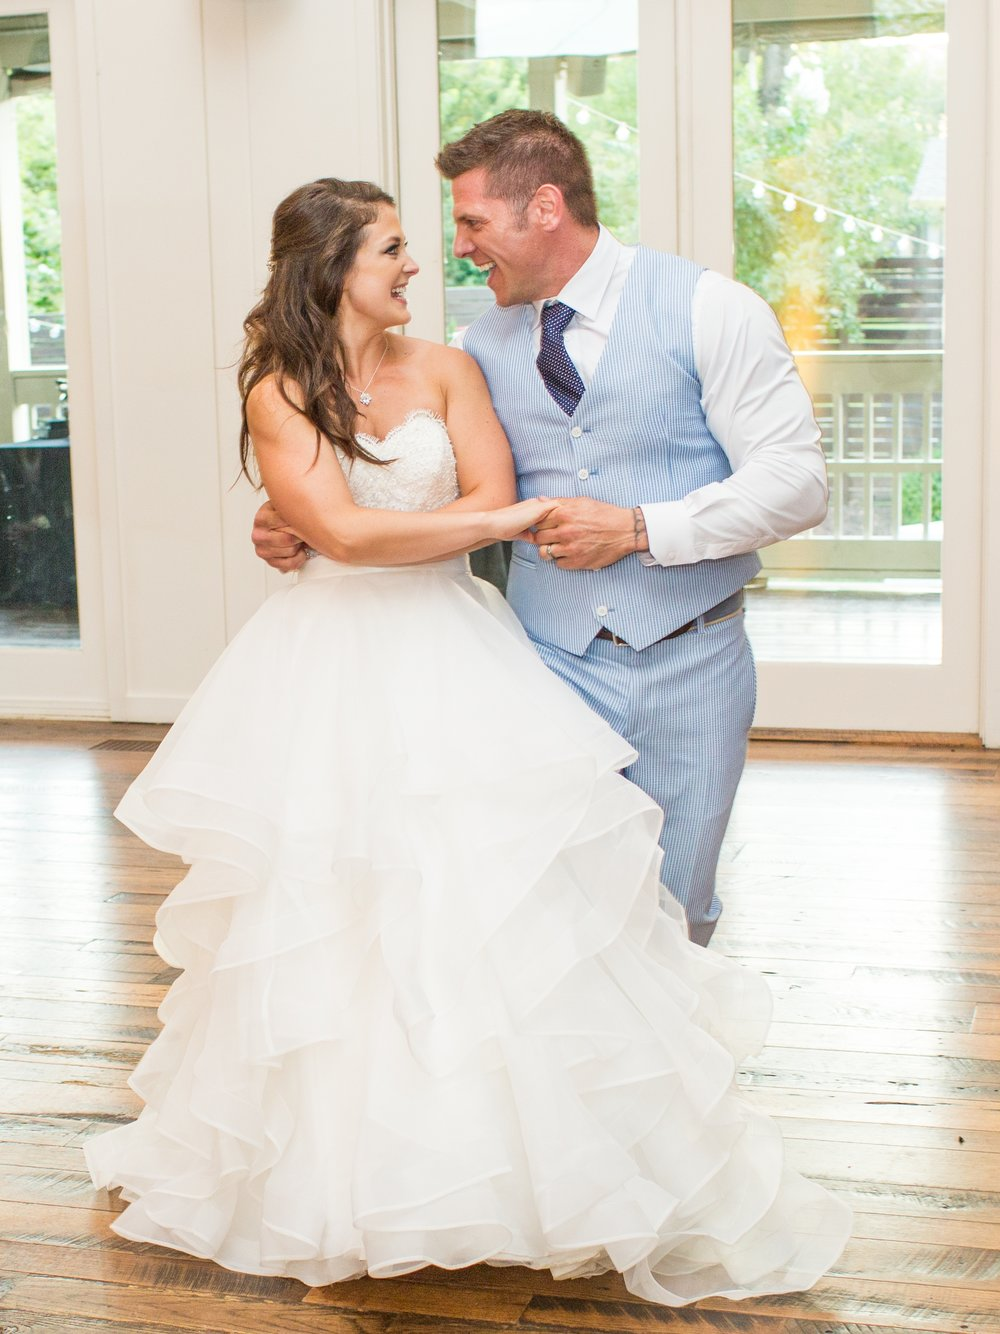 Photo by    Matt Andrews Photography    featuring Duet's students Megan and Donnie at their wedding.